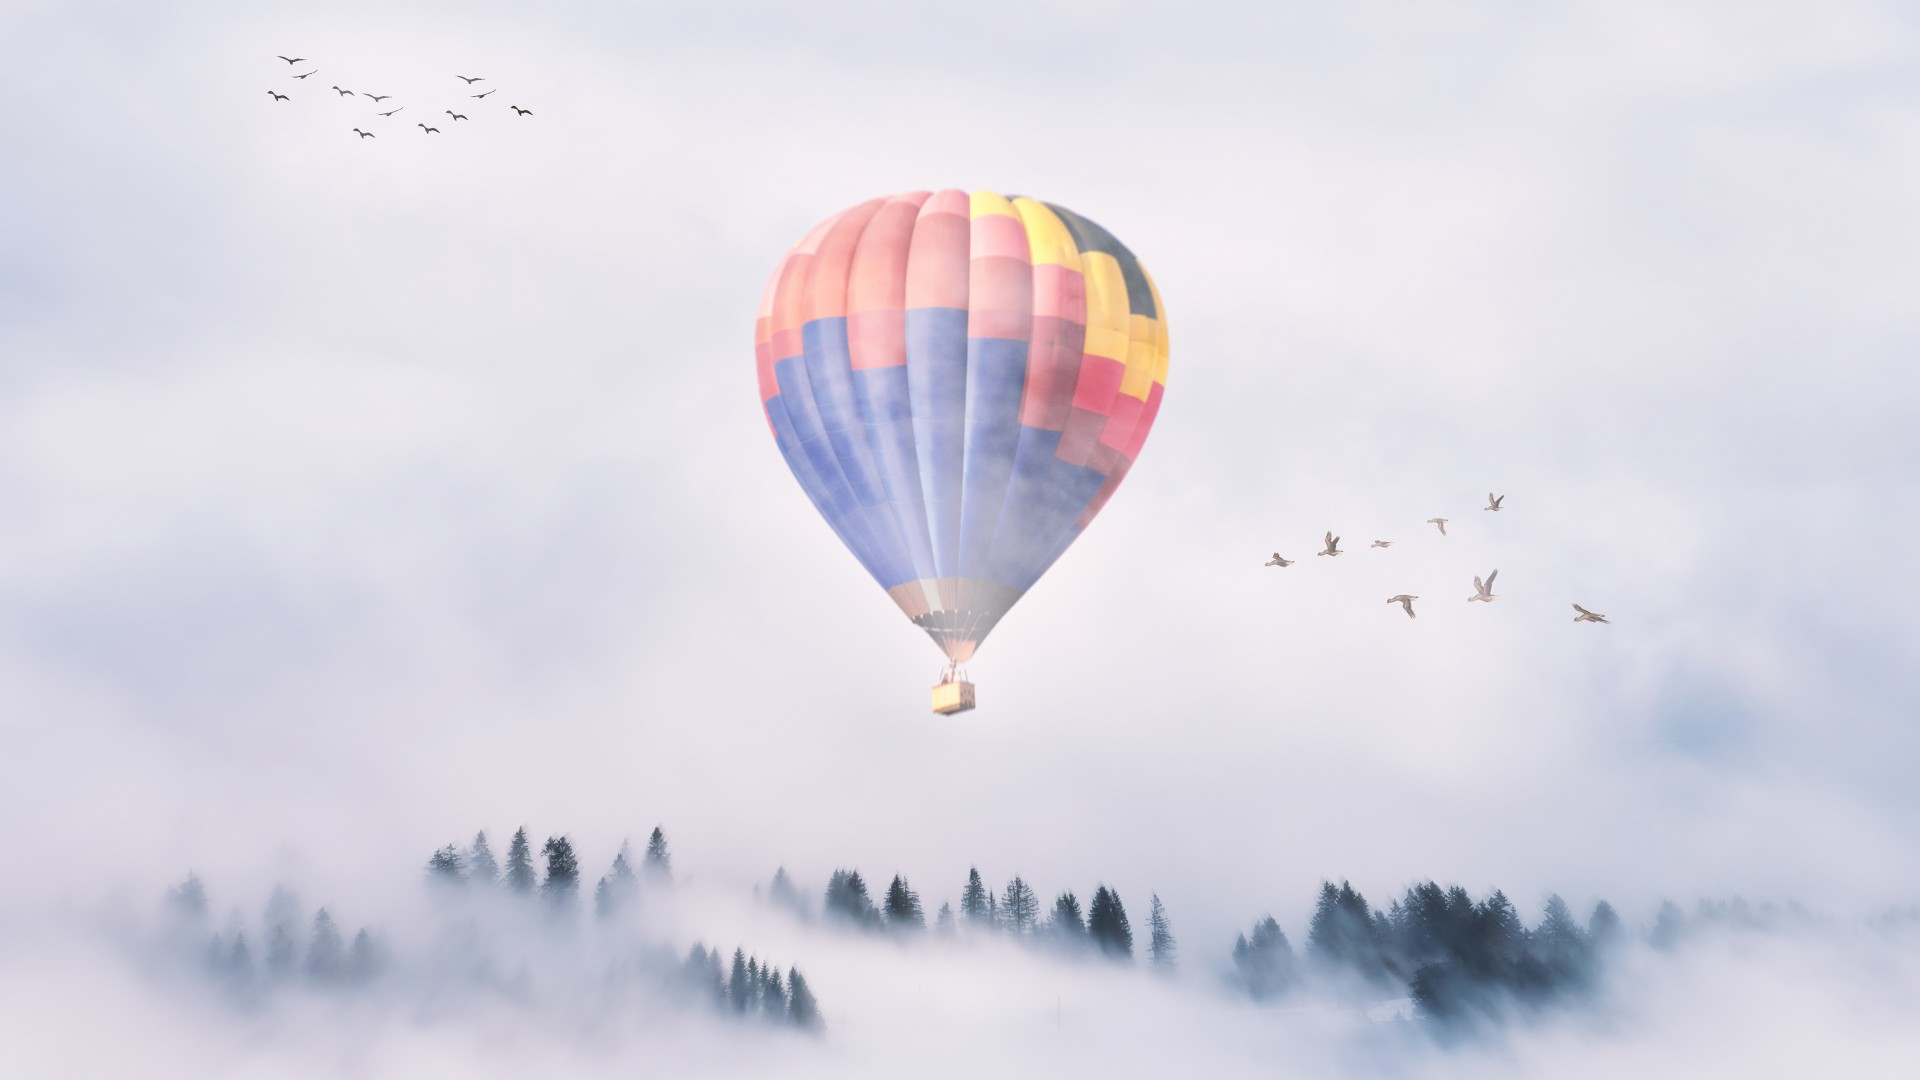 3d Wallpaper For Ipad Pro Hot Air Balloon Mist 4k Wallpapers Hd Wallpapers Id 24985